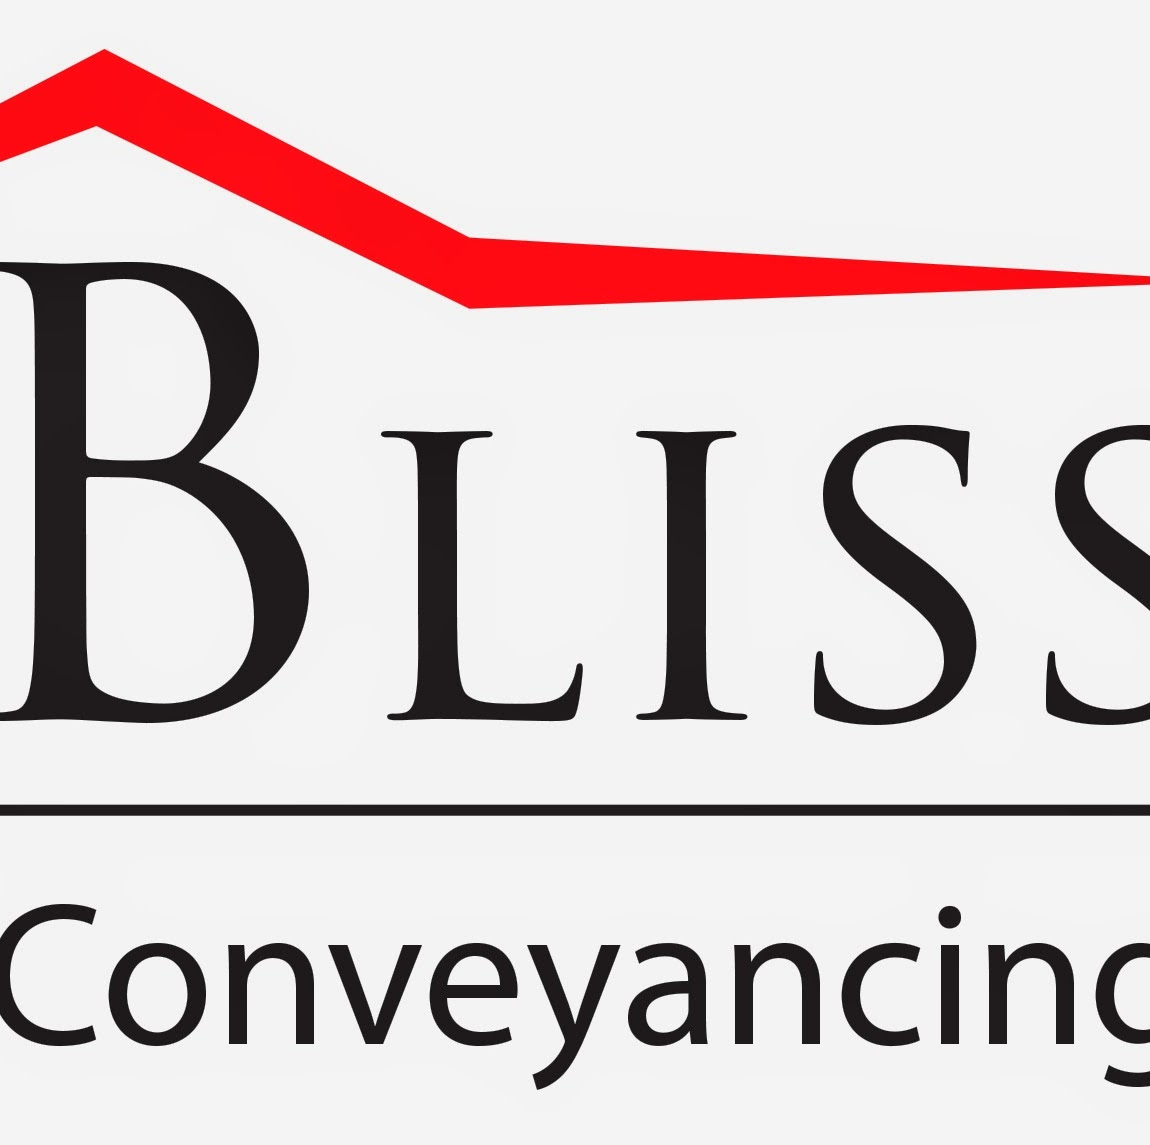 Bliss Conveyancing